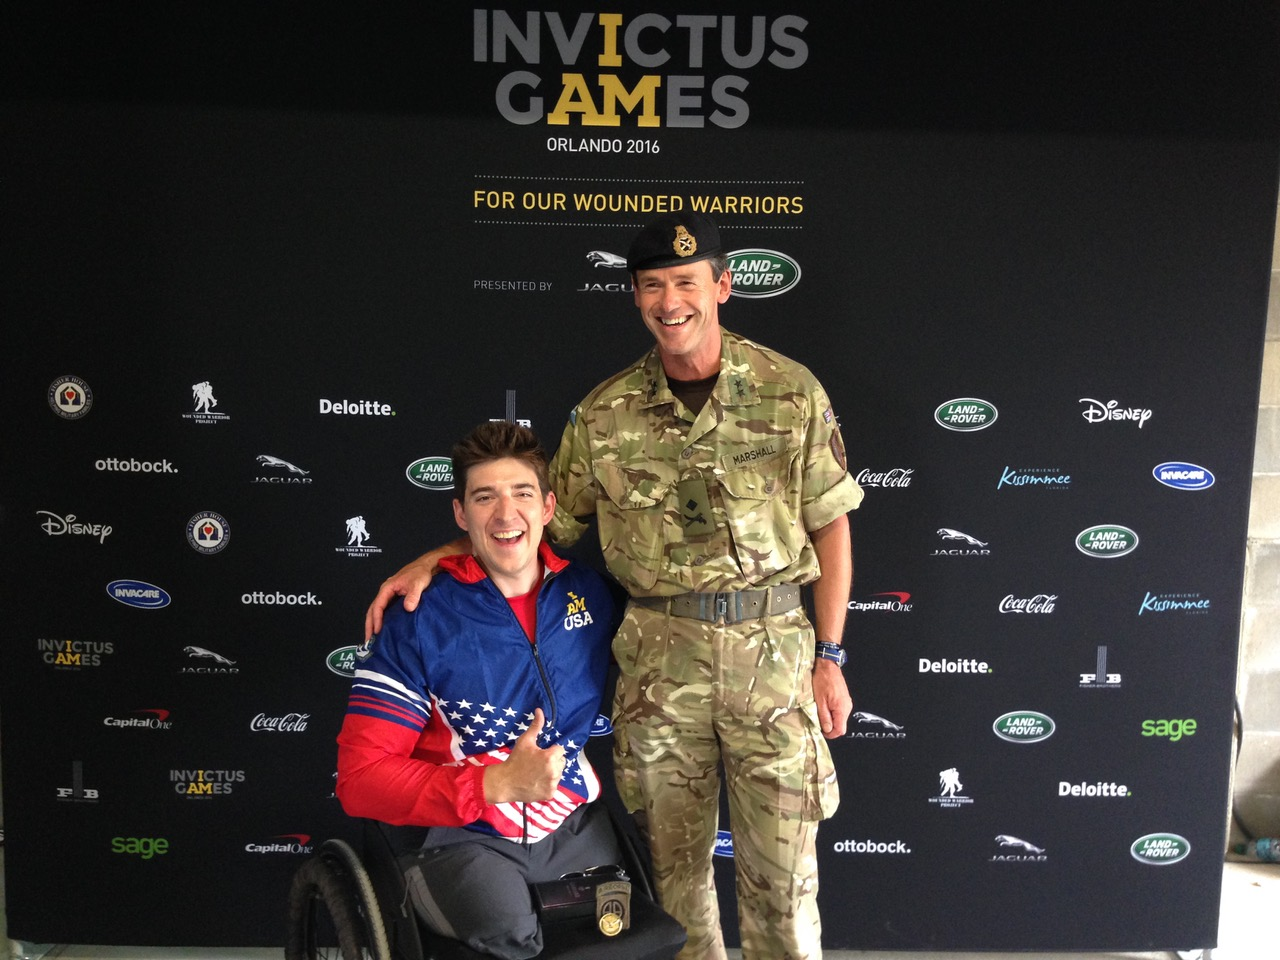 General Major Neil Marshall at the Invictus Games 2016